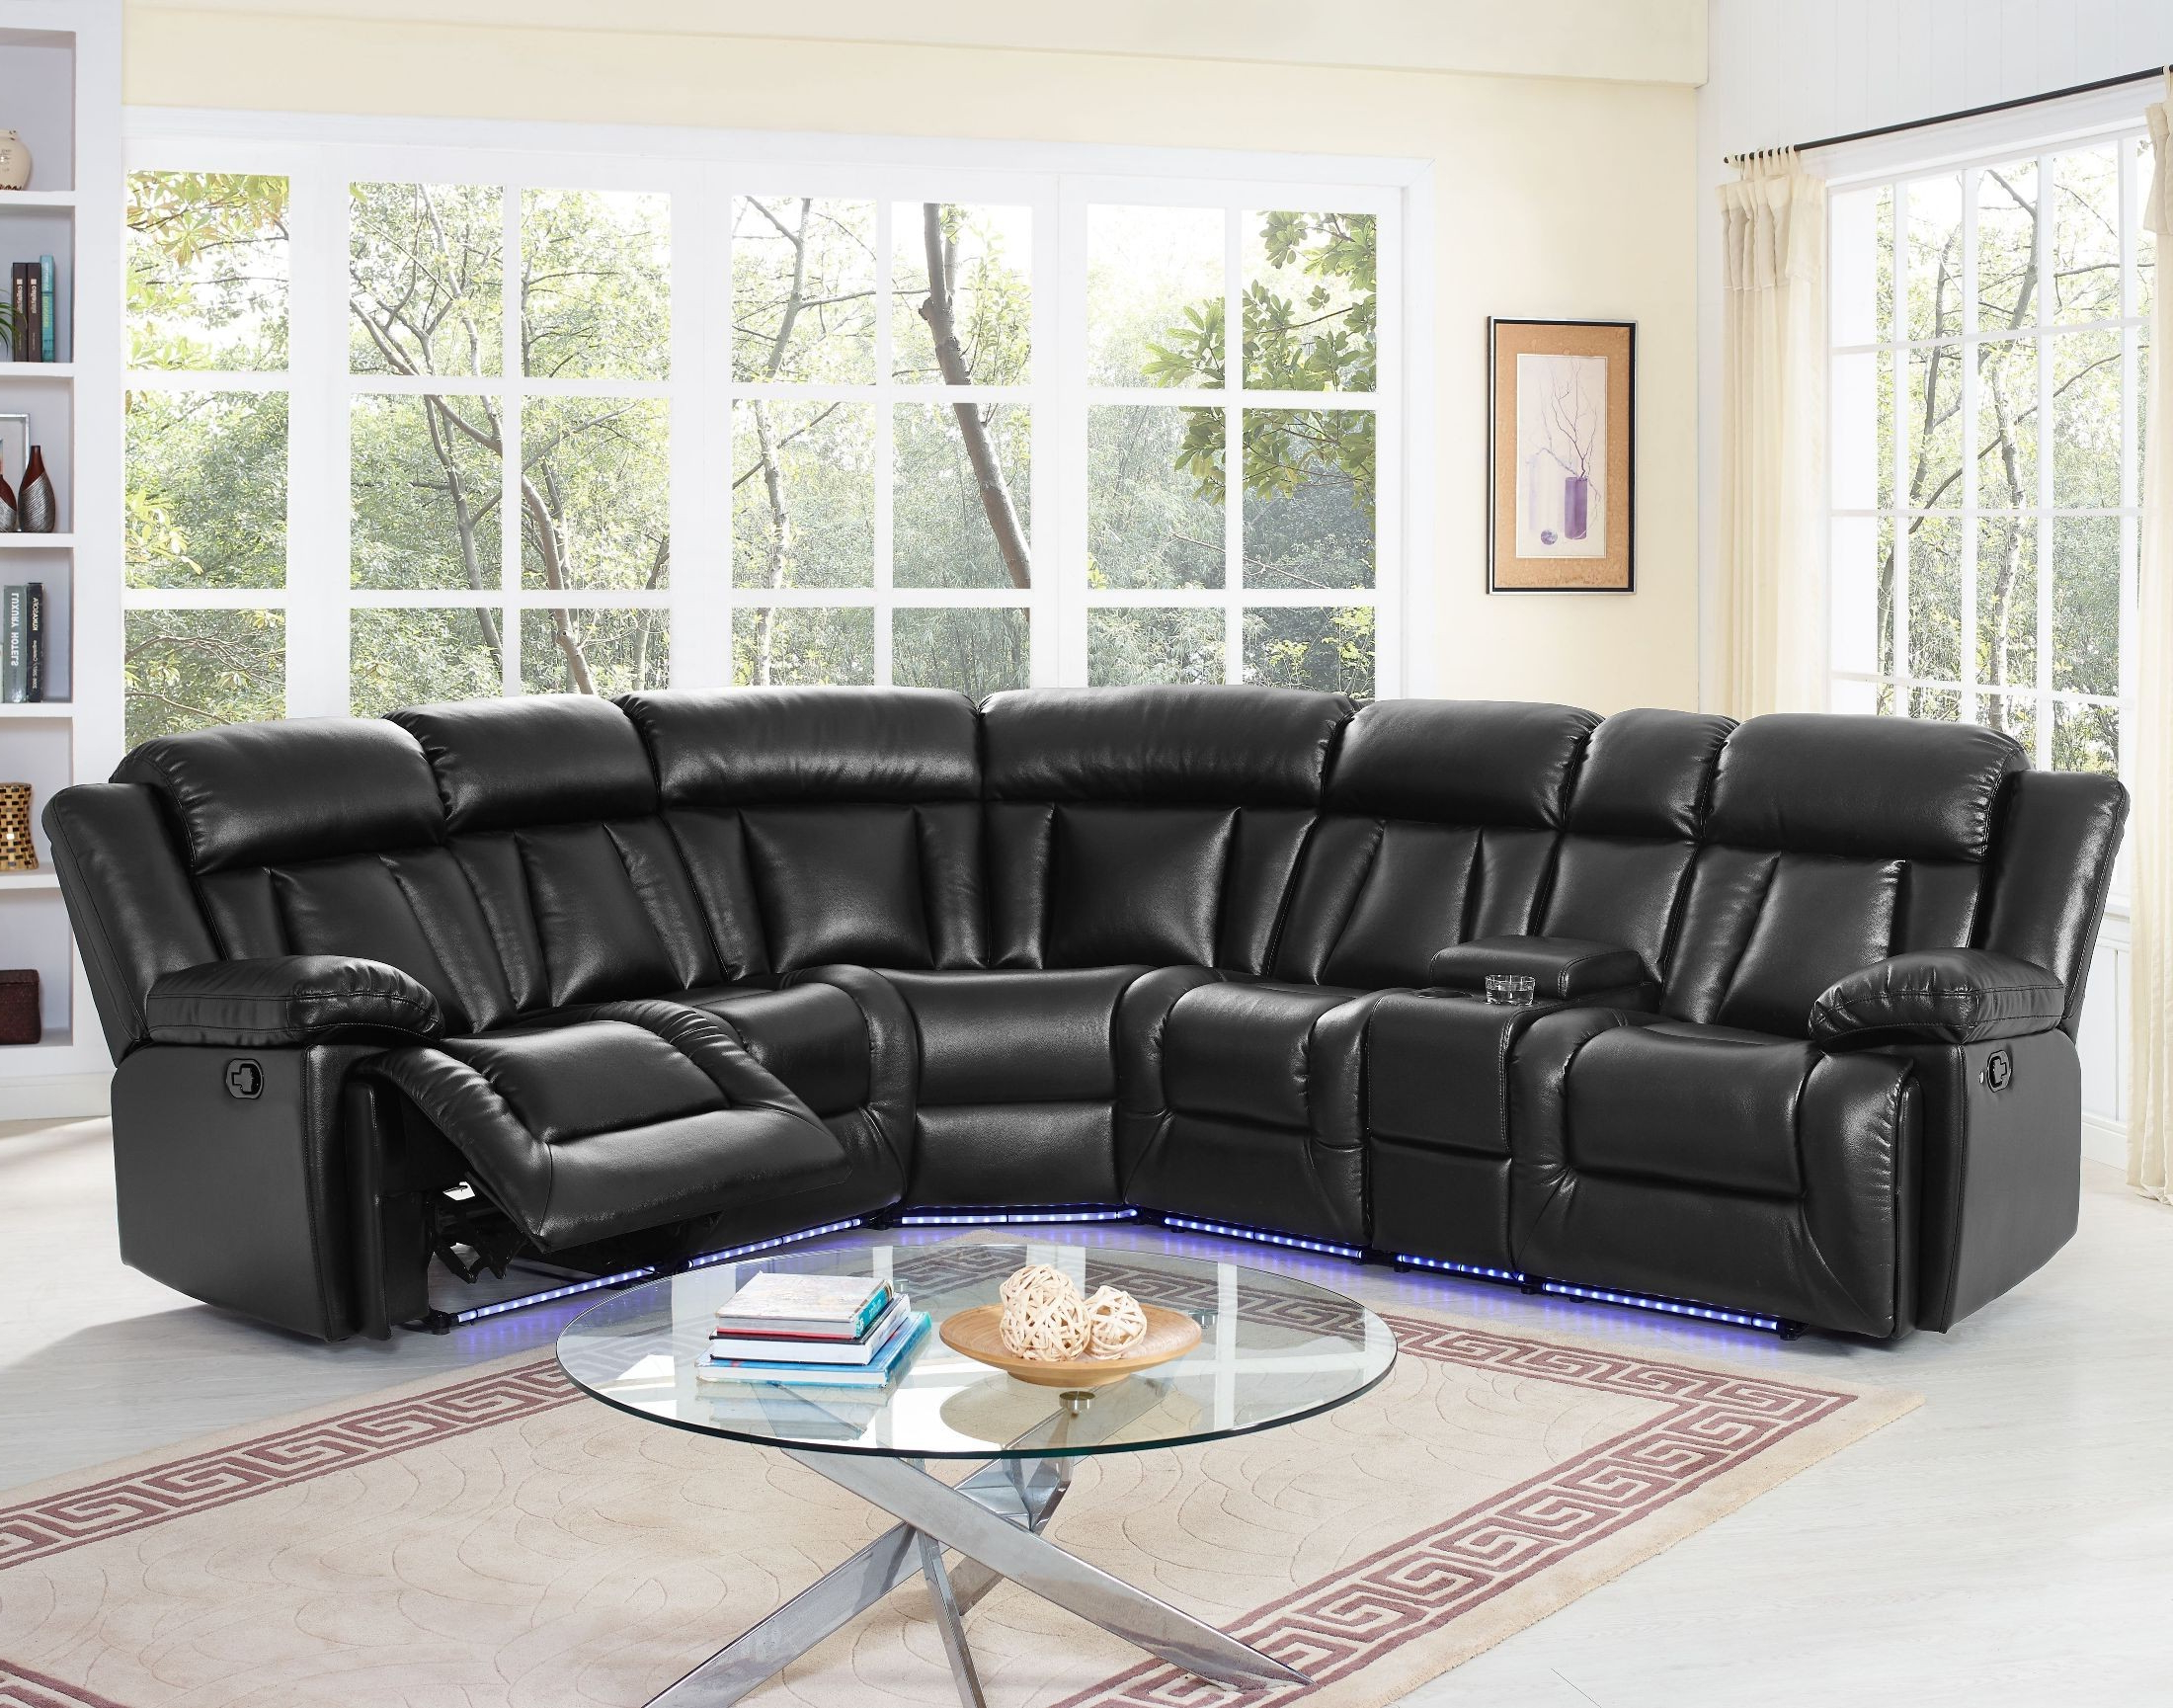 Turdur 2 Piece Sectionals With Laf Loveseat For Fashionable Starlight Premier Black Sectional From New Classic (View 13 of 20)